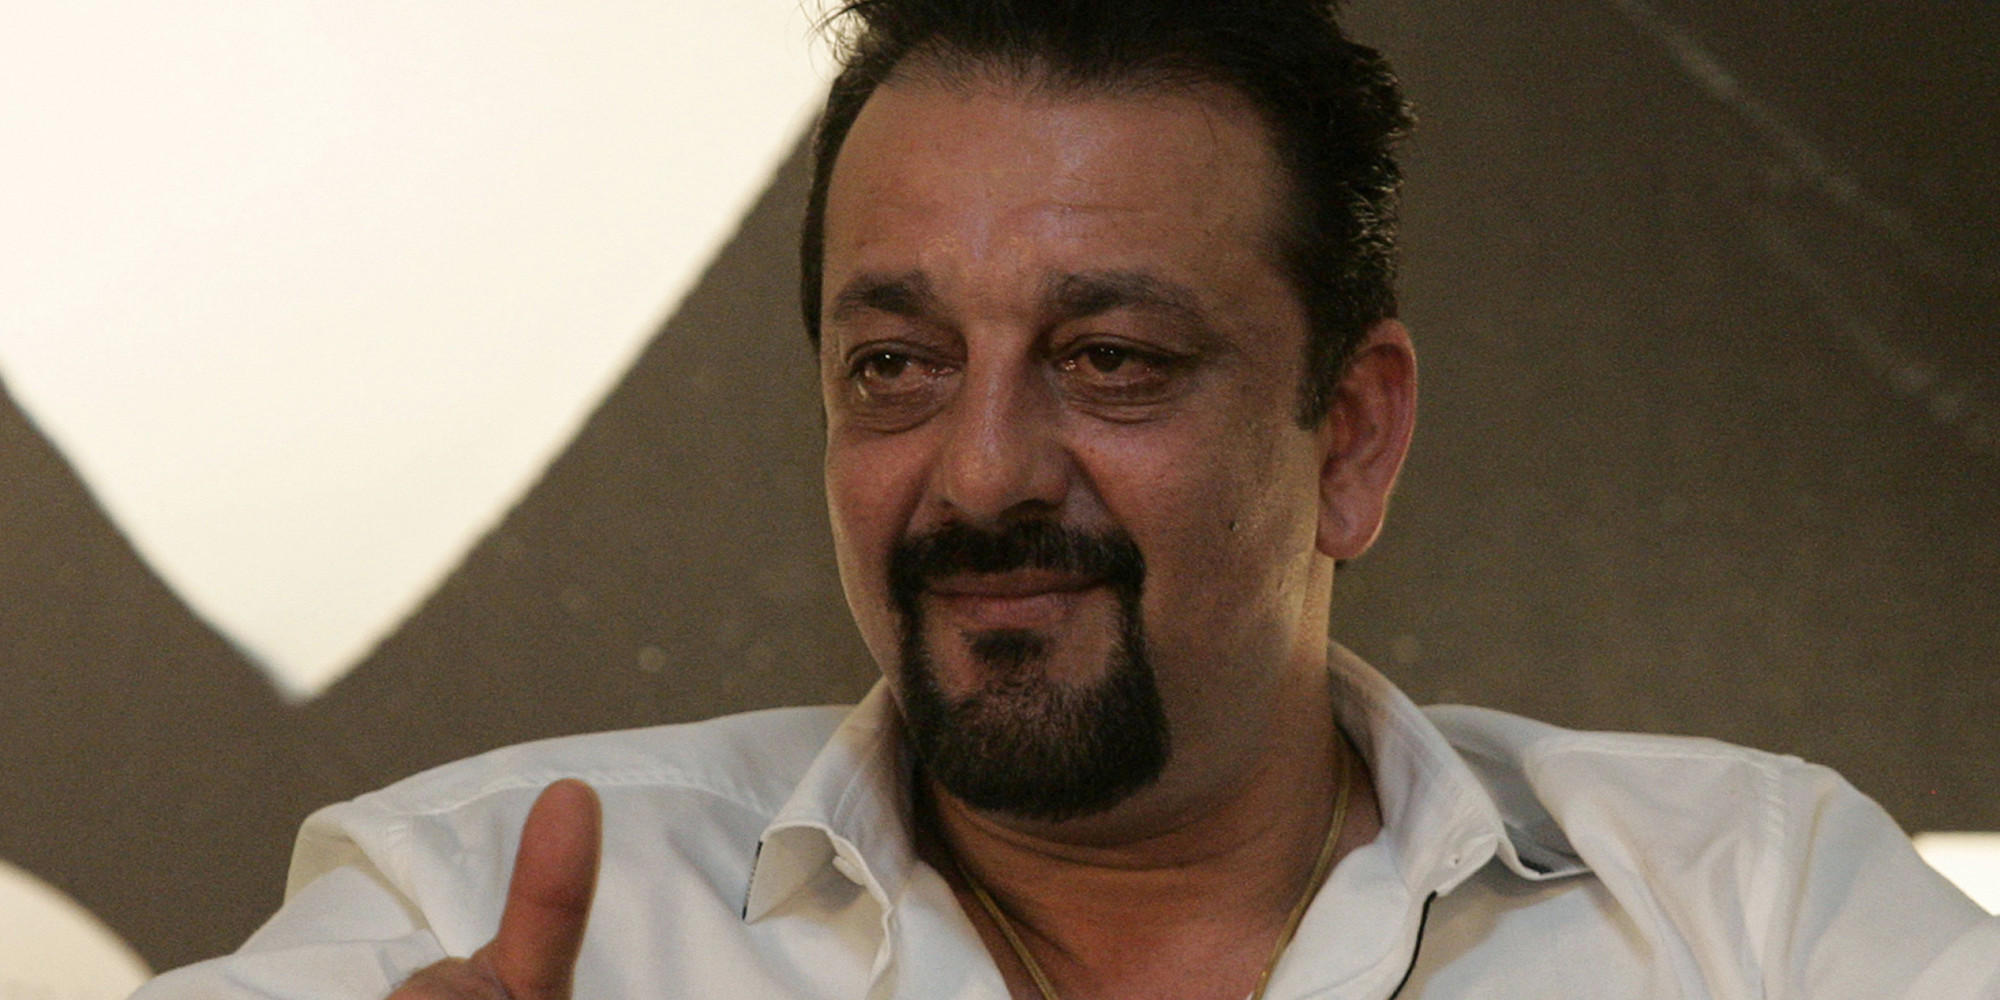 sanjay dutt facebooksanjay dutt filmi, sanjay dutt film, sanjay dutt filmleri, sanjay dutt filmography, sanjay dutt movies, sanjay dutt kinopoisk, sanjay dutt wife, sanjay dutt and madhuri dixit, sanjay dutt film list, sanjay dutt height, sanjay dutt john abraham, sanjay dutt biopic, sanjay dutt and prachi desai movie, sanjay dutt facebook, sanjay dutt luck, sanjay dutt john abraham song, sanjay dutt new film 2016, sanjay dutt india, sanjay dutt about, sanjay dutt nayak nahi khalnayak